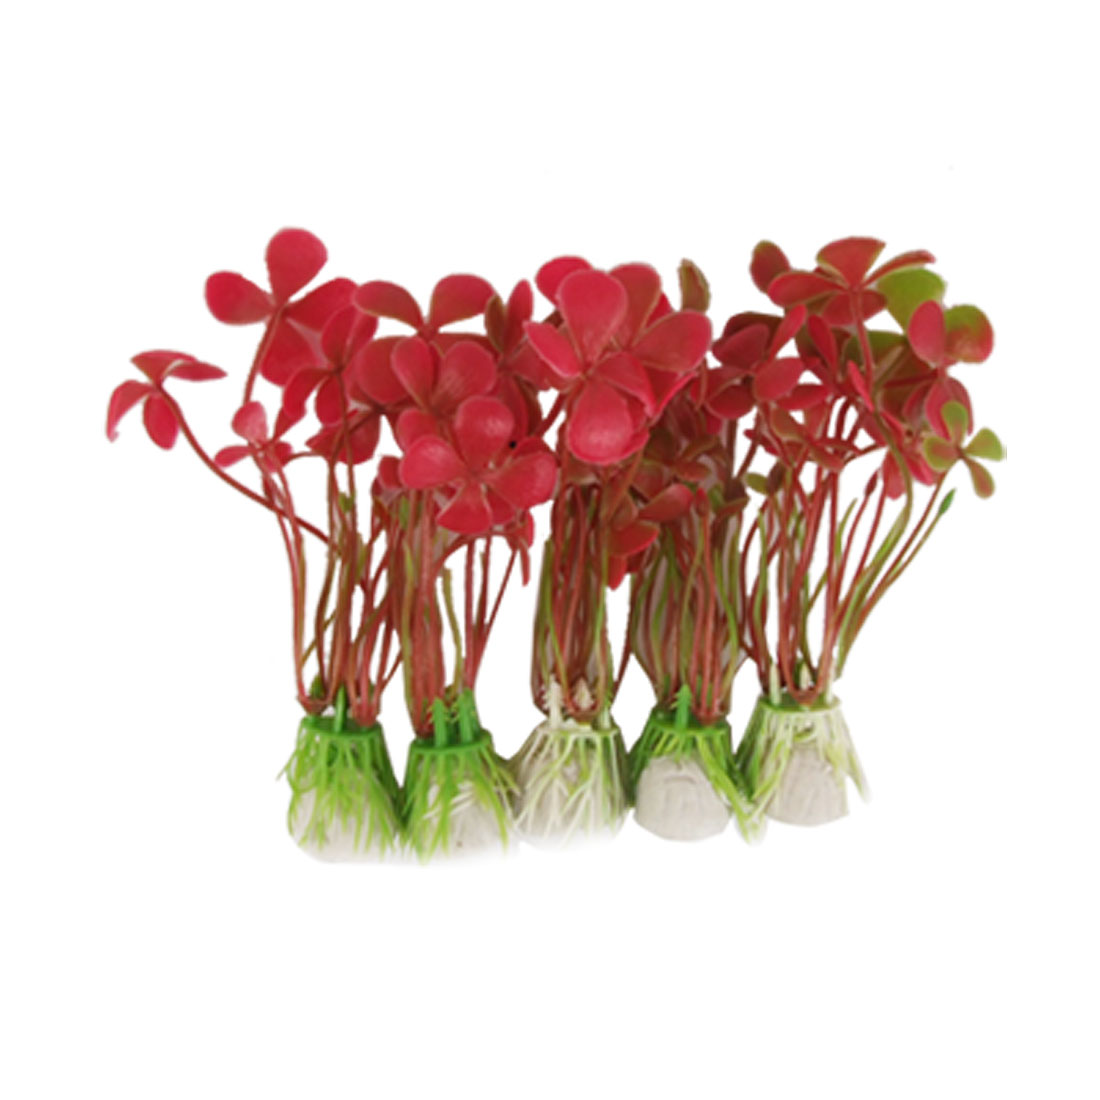 "Fish Tank 5 Pcs 4.5"" High Red Leaves Plastic Plant Grass w Base"